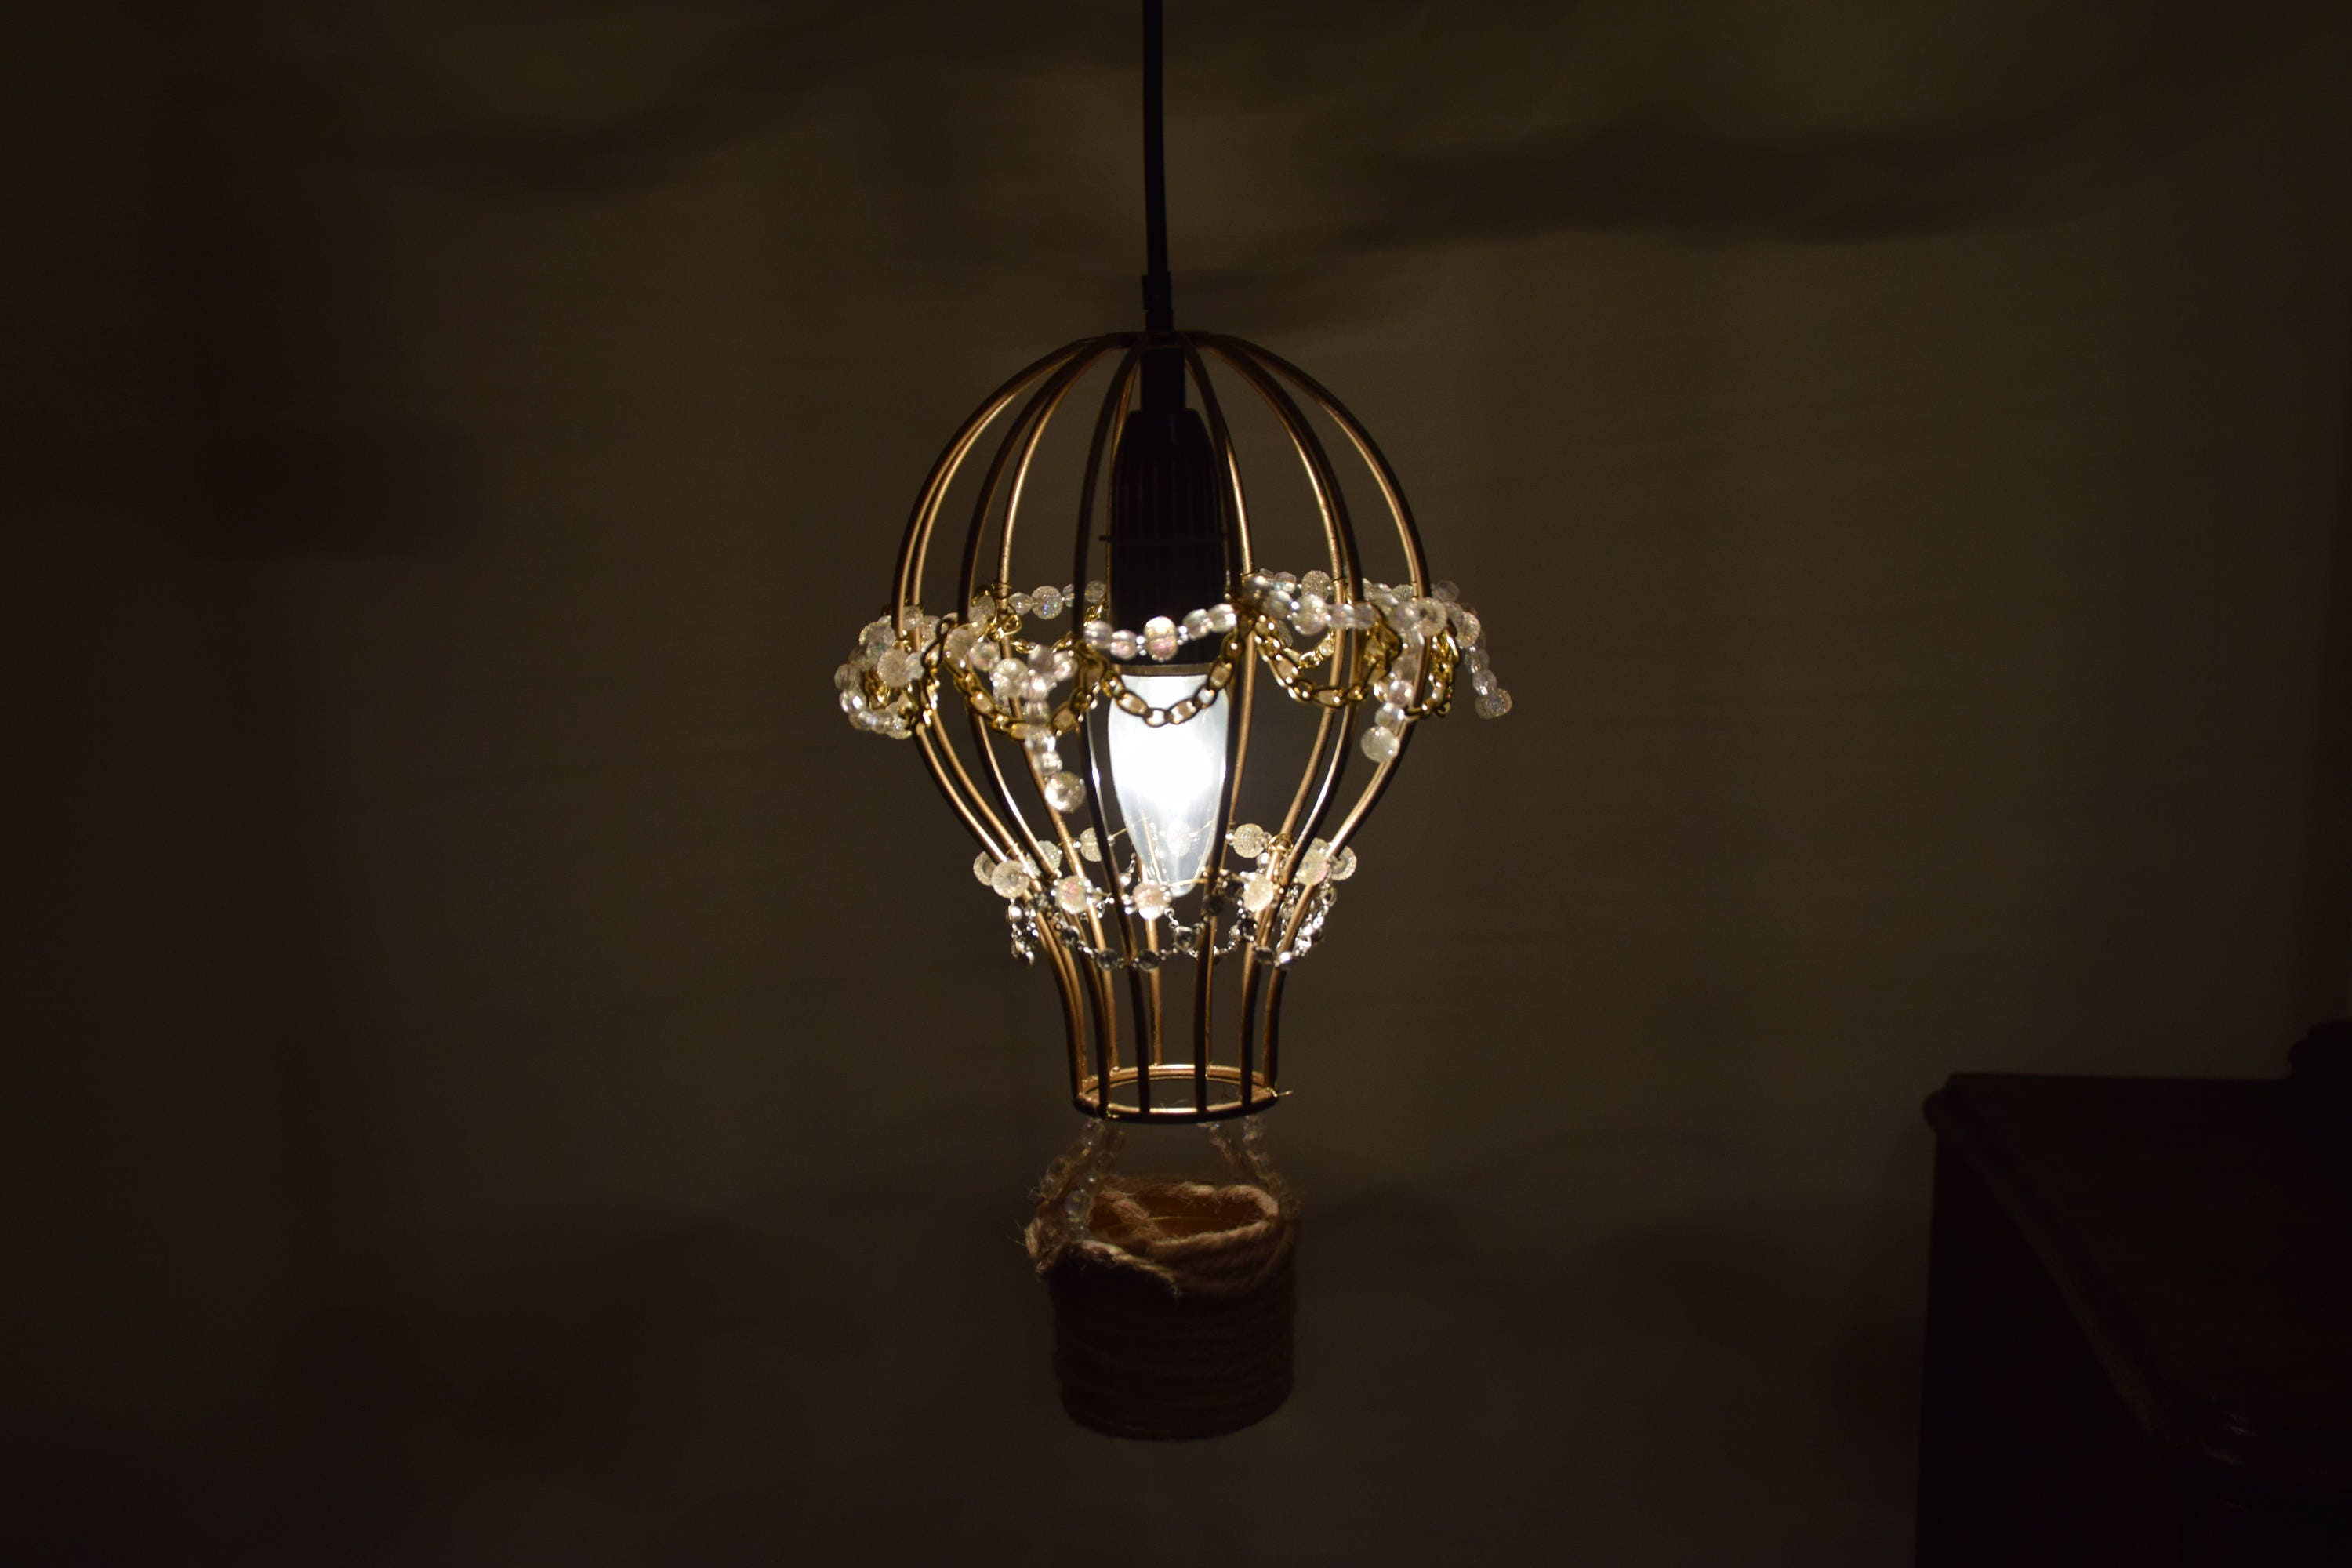 chandelier balloon pendant fullxfull to il ready ship listing hot light hanging air gallery decor photo